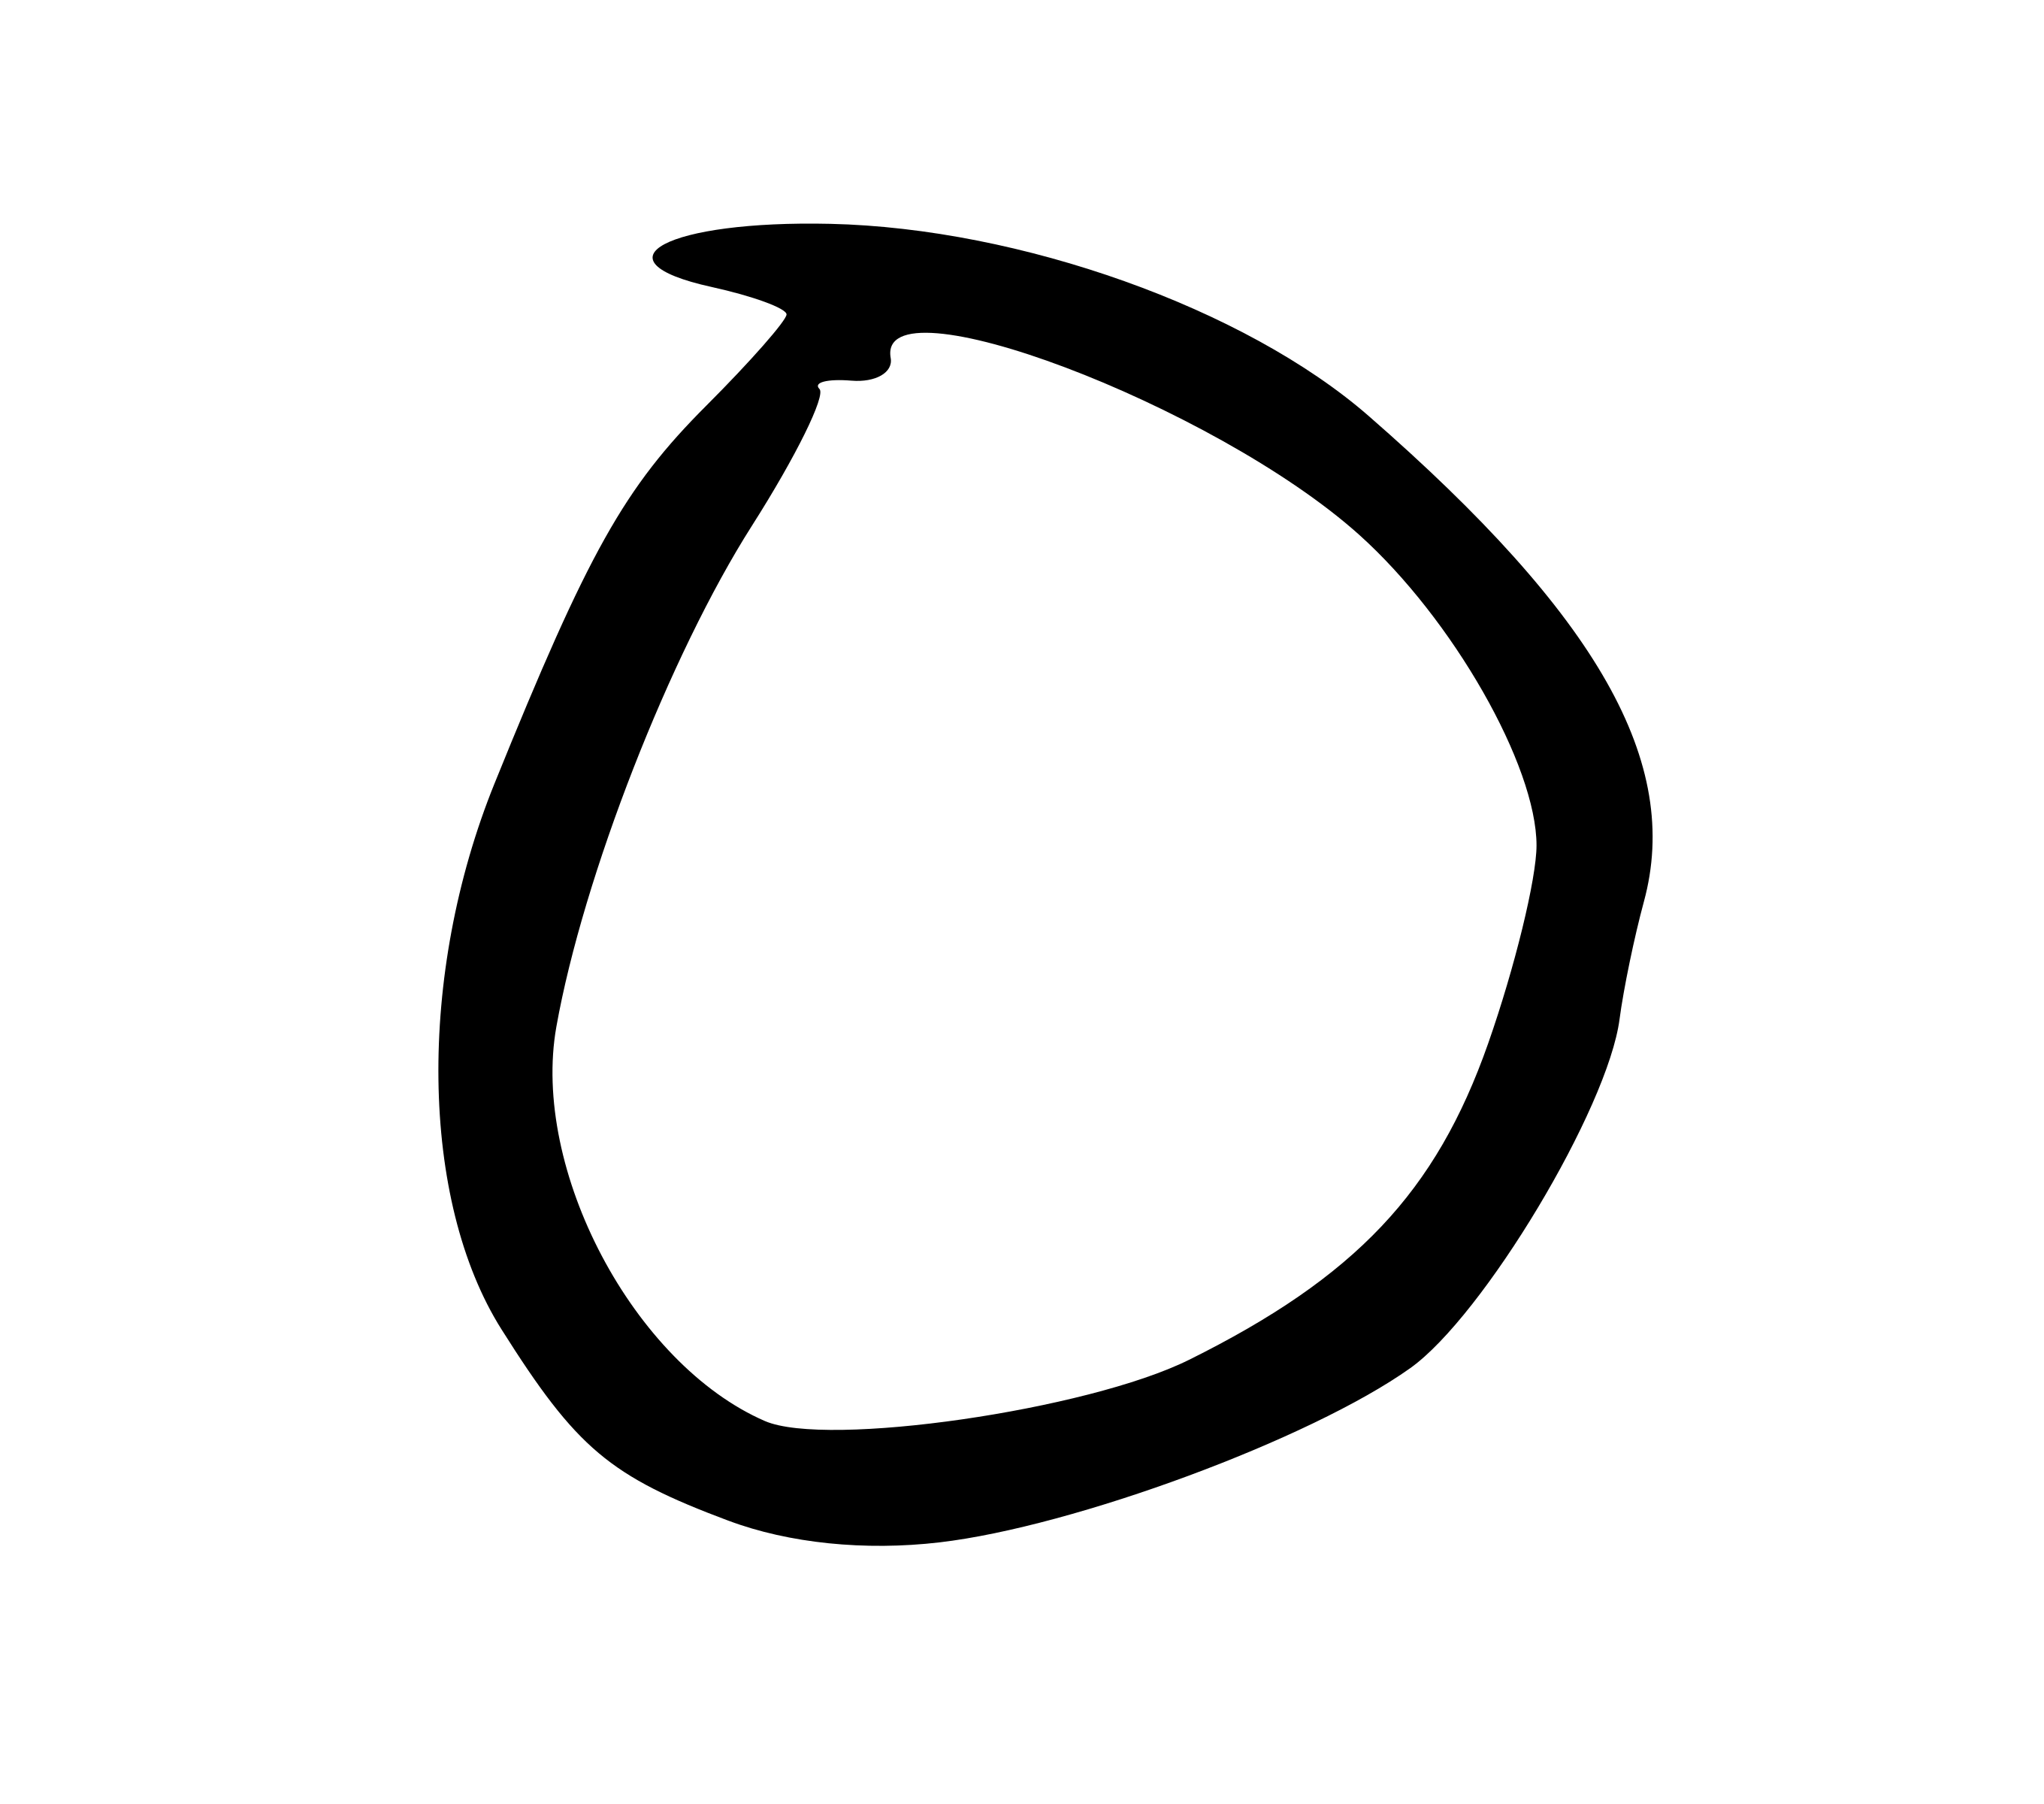 letter-o-or-zero-icons-png-424021.png